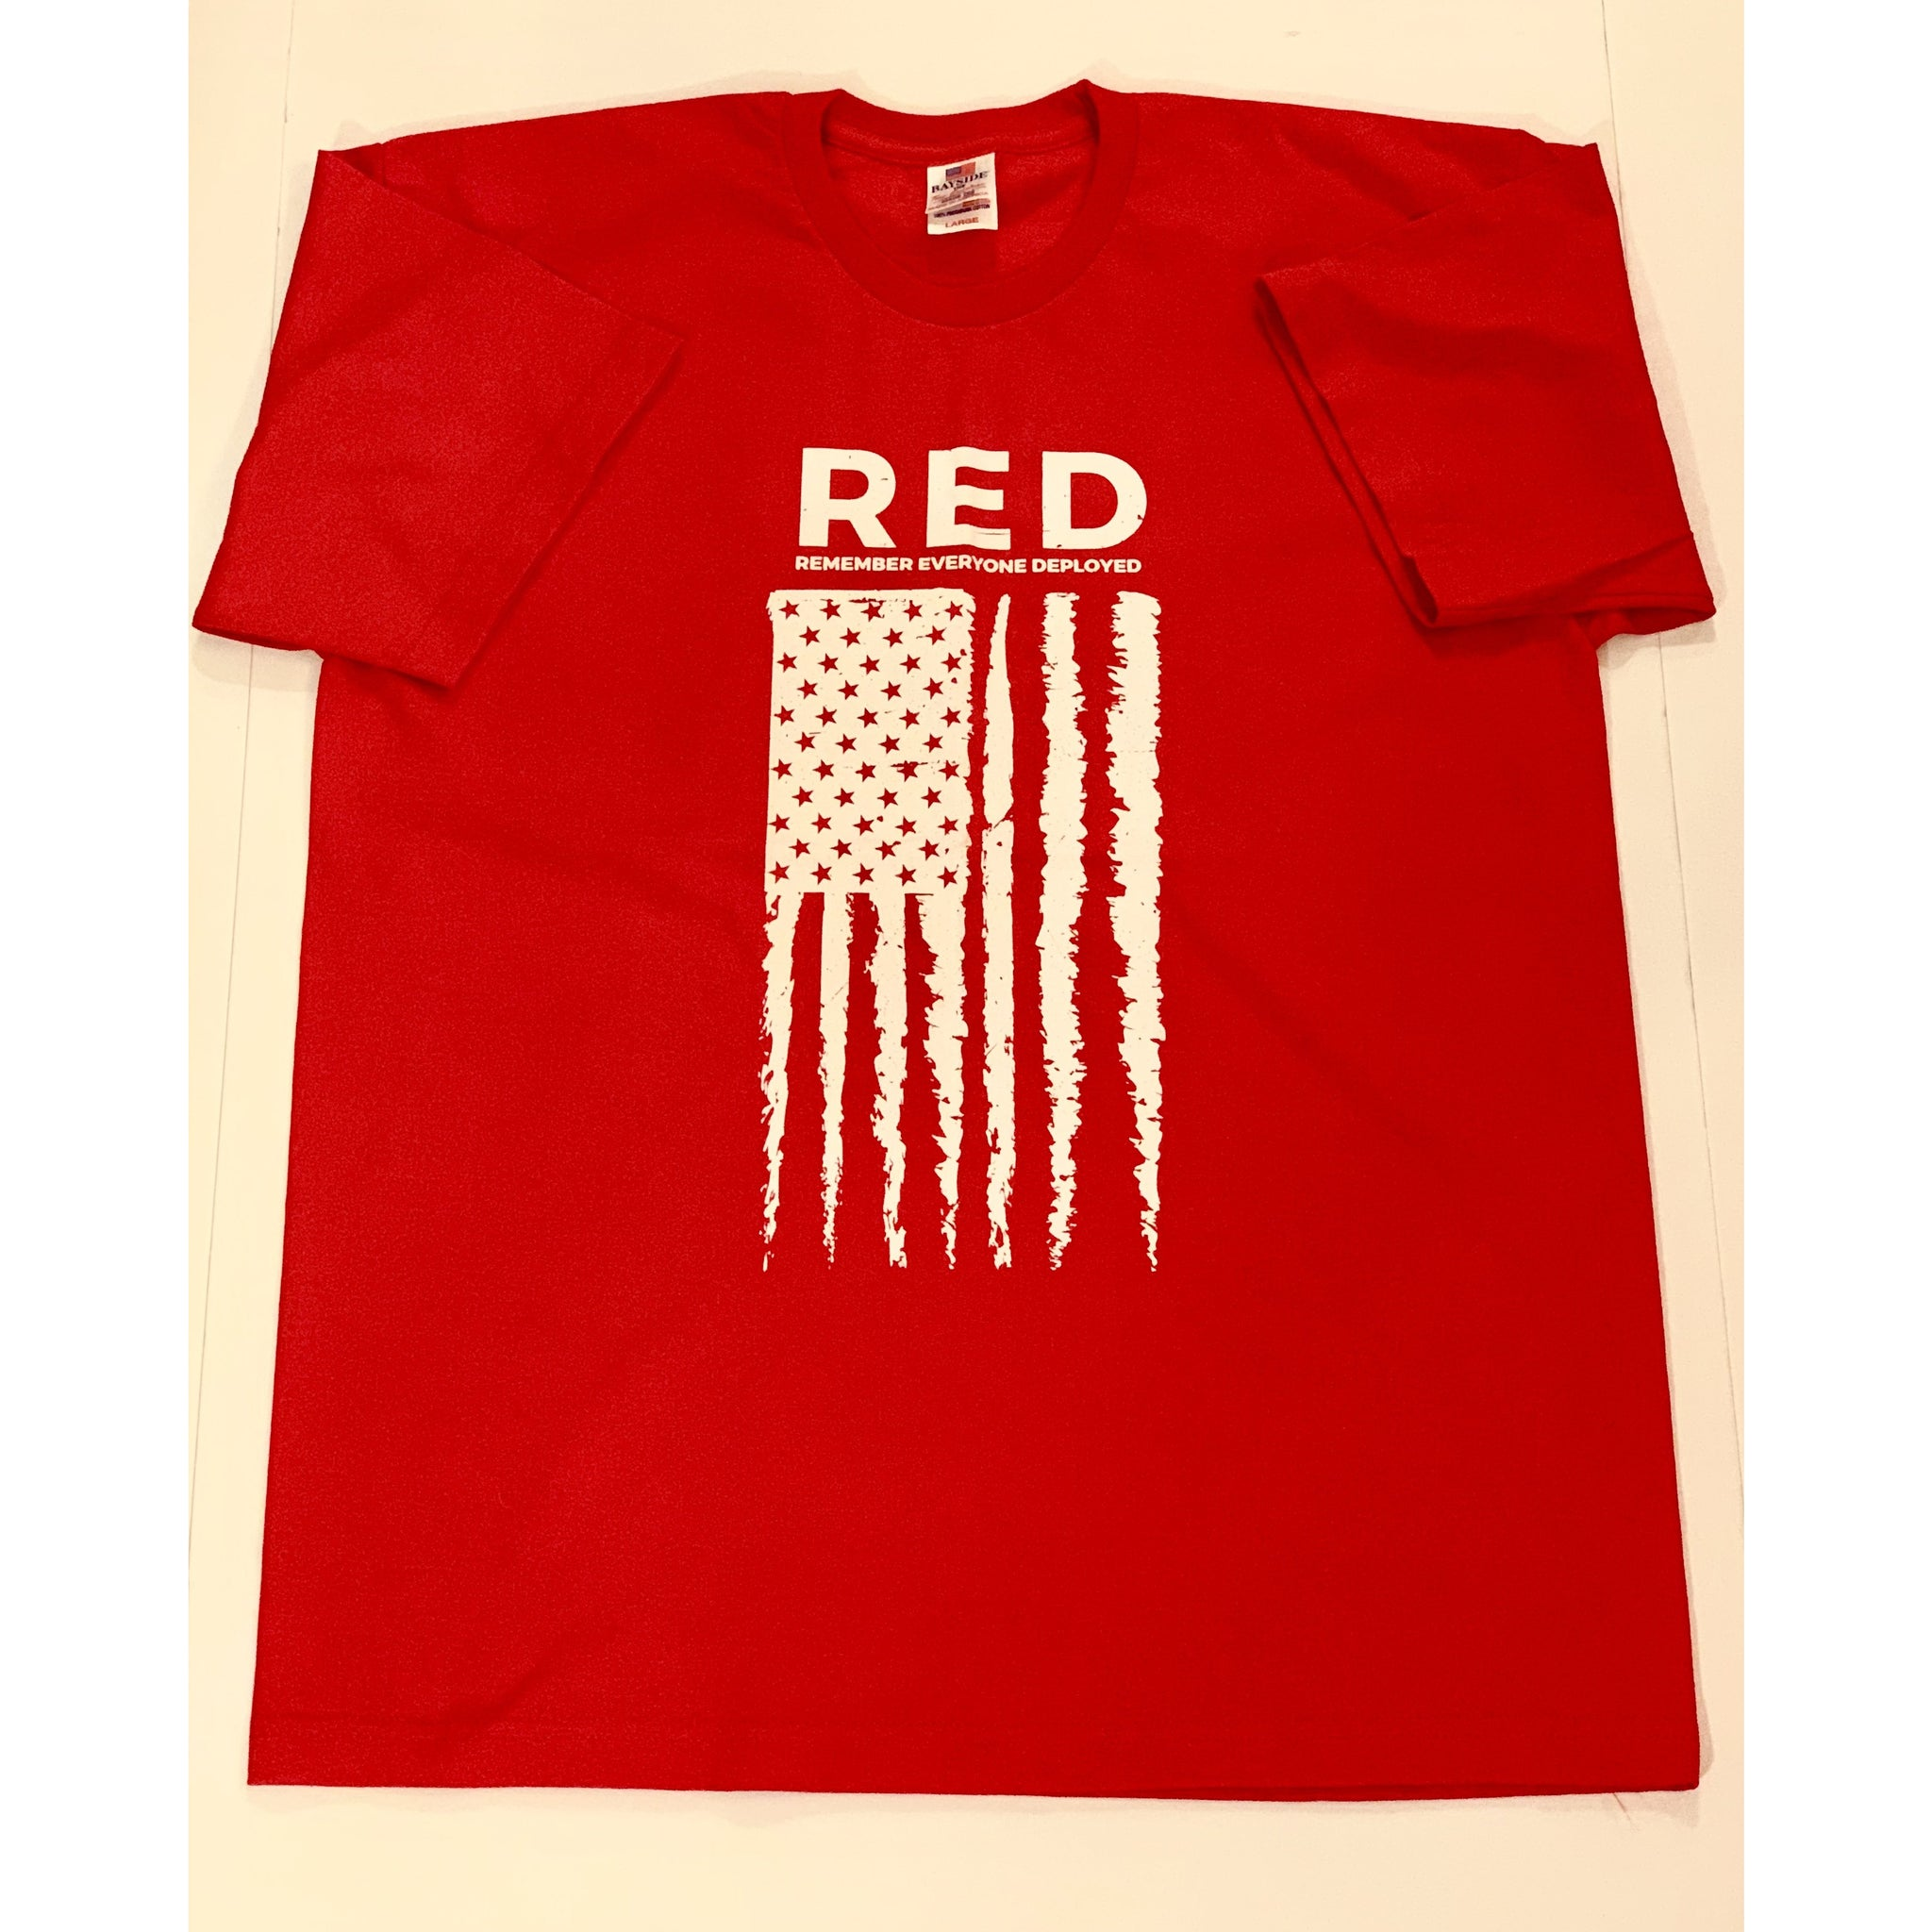 Short Sleeve Tee - RED (Remember Everyone Deployed)